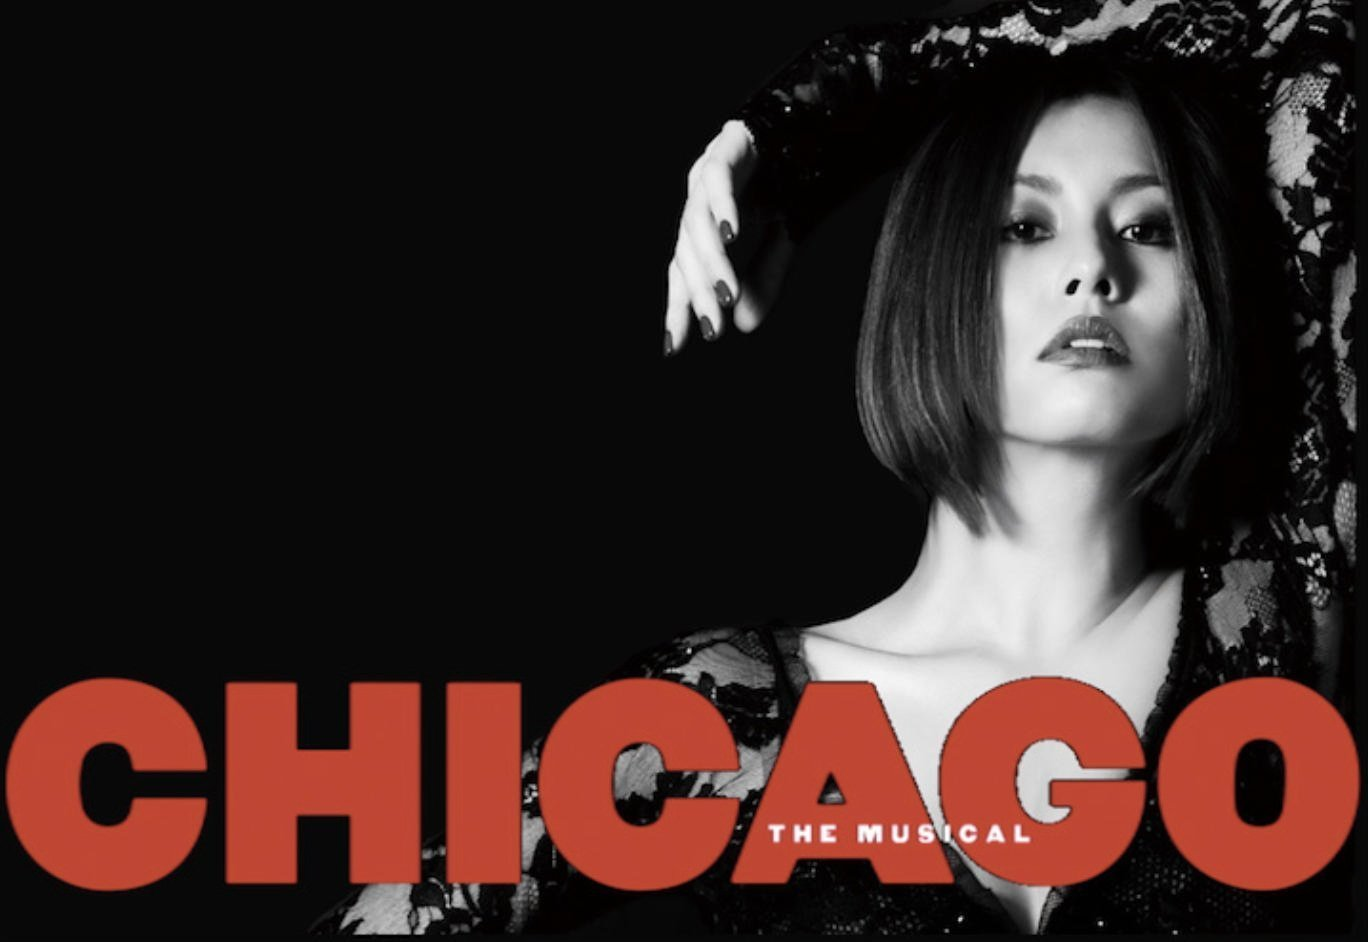 CHICAGO THE MUSICAL to Play at Tokyu Theatre Orb